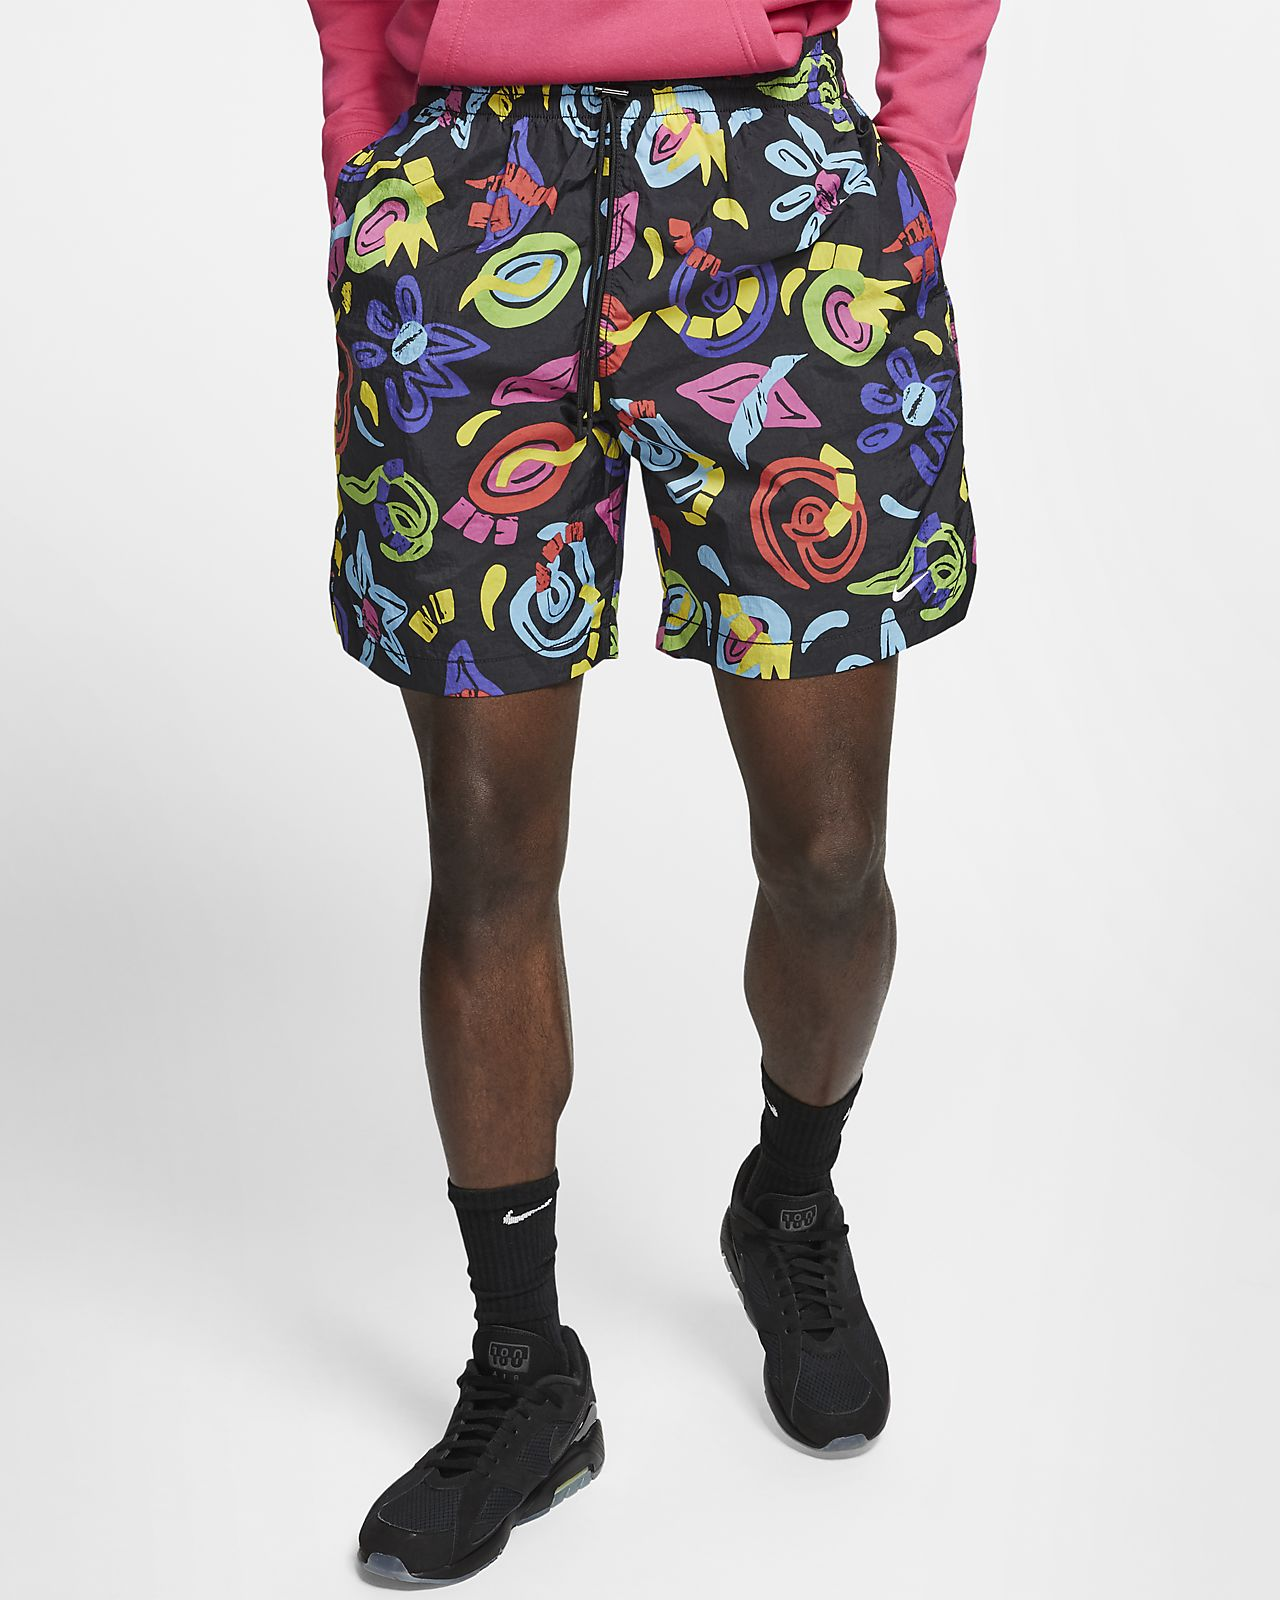 NikeLab Collection Herrenshorts mit Print